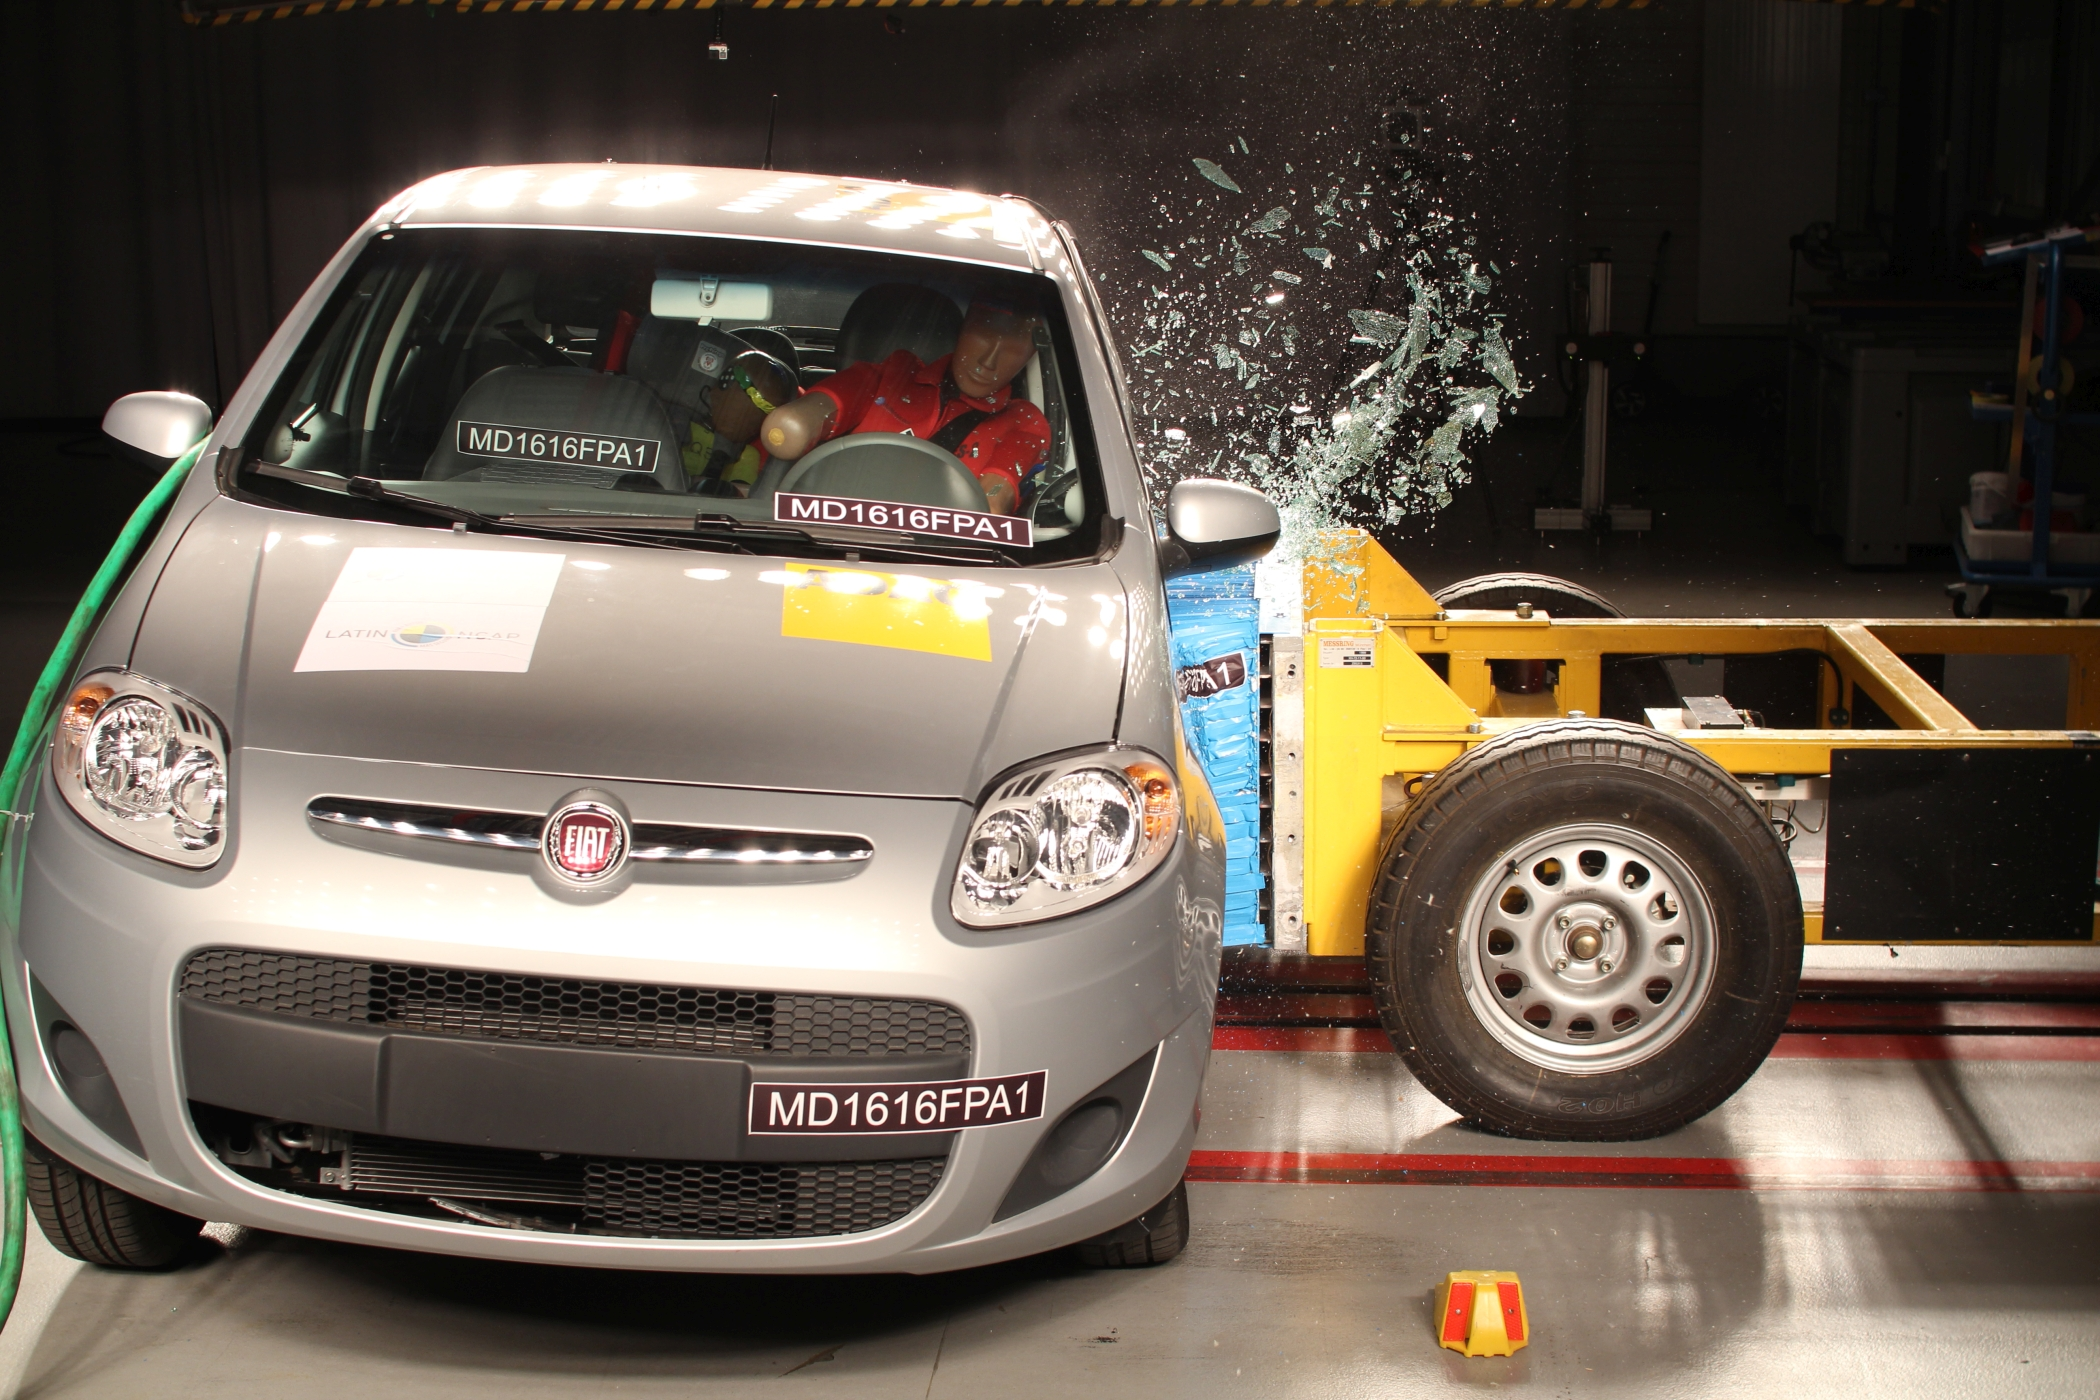 FiatNewPalio 2airbags side